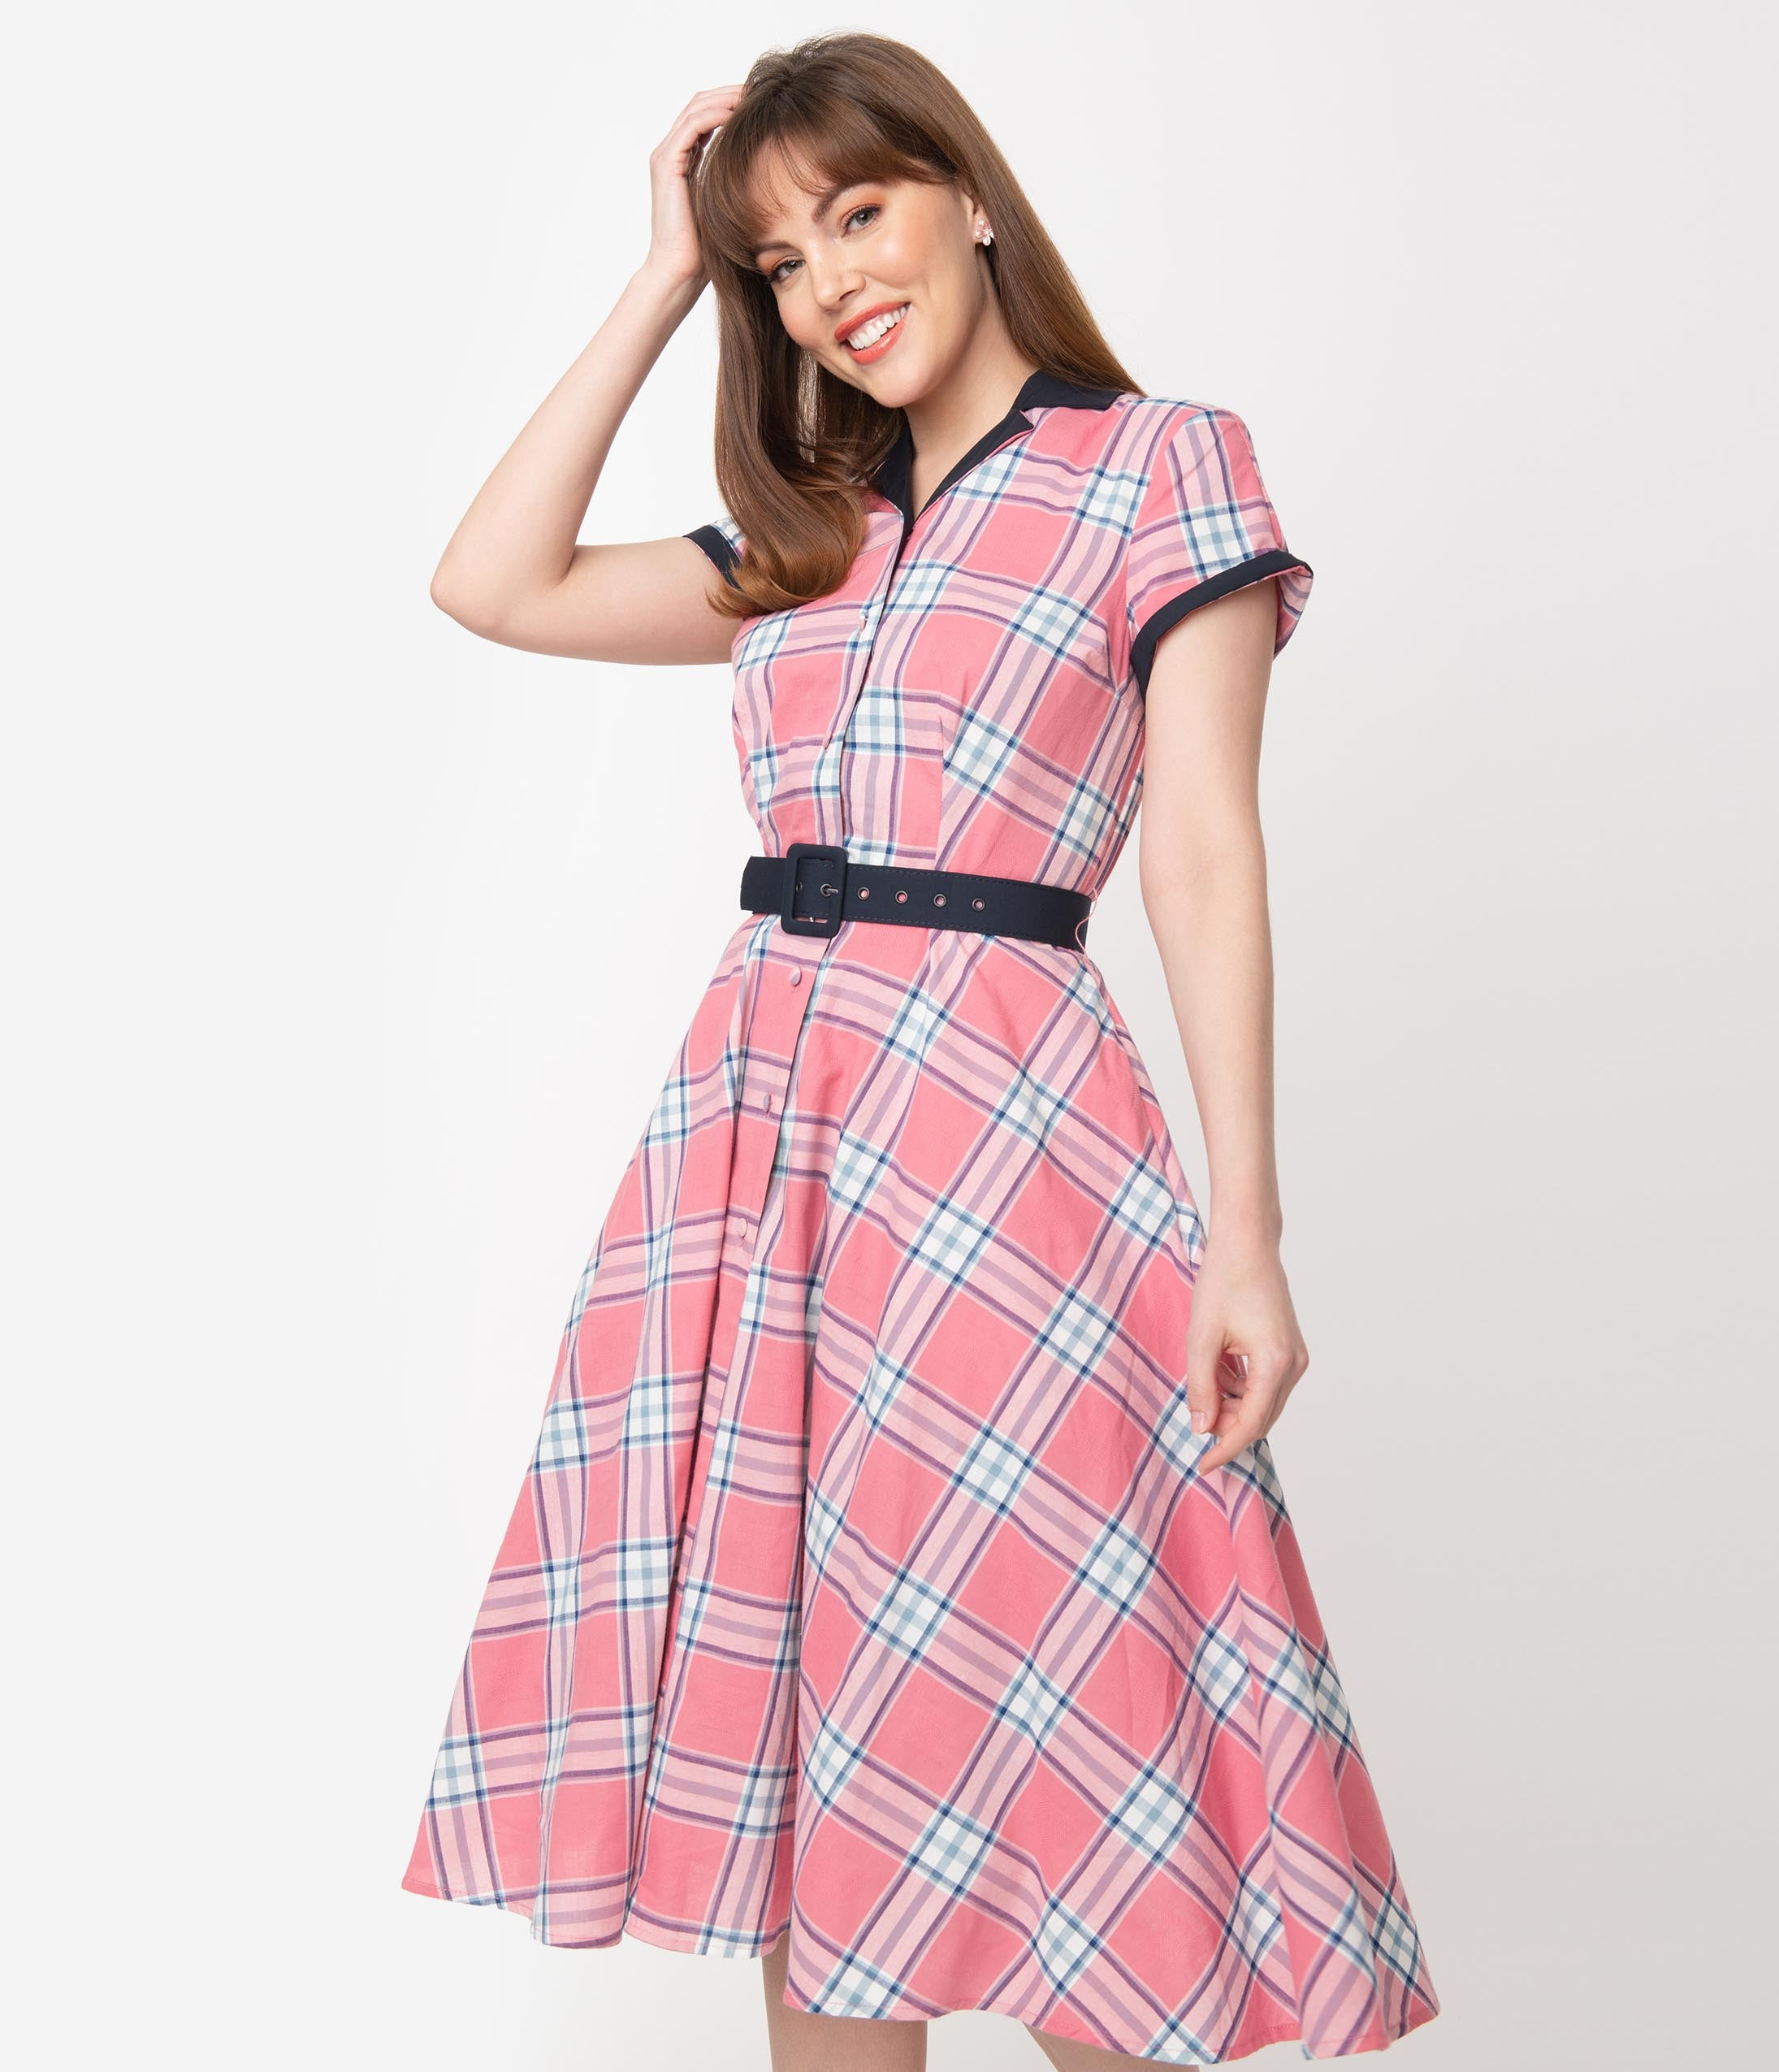 Vintage Shirtwaist Dress History Unique Vintage 1950S Style Light Pink Plaid Alexis Swing Dress $88.00 AT vintagedancer.com